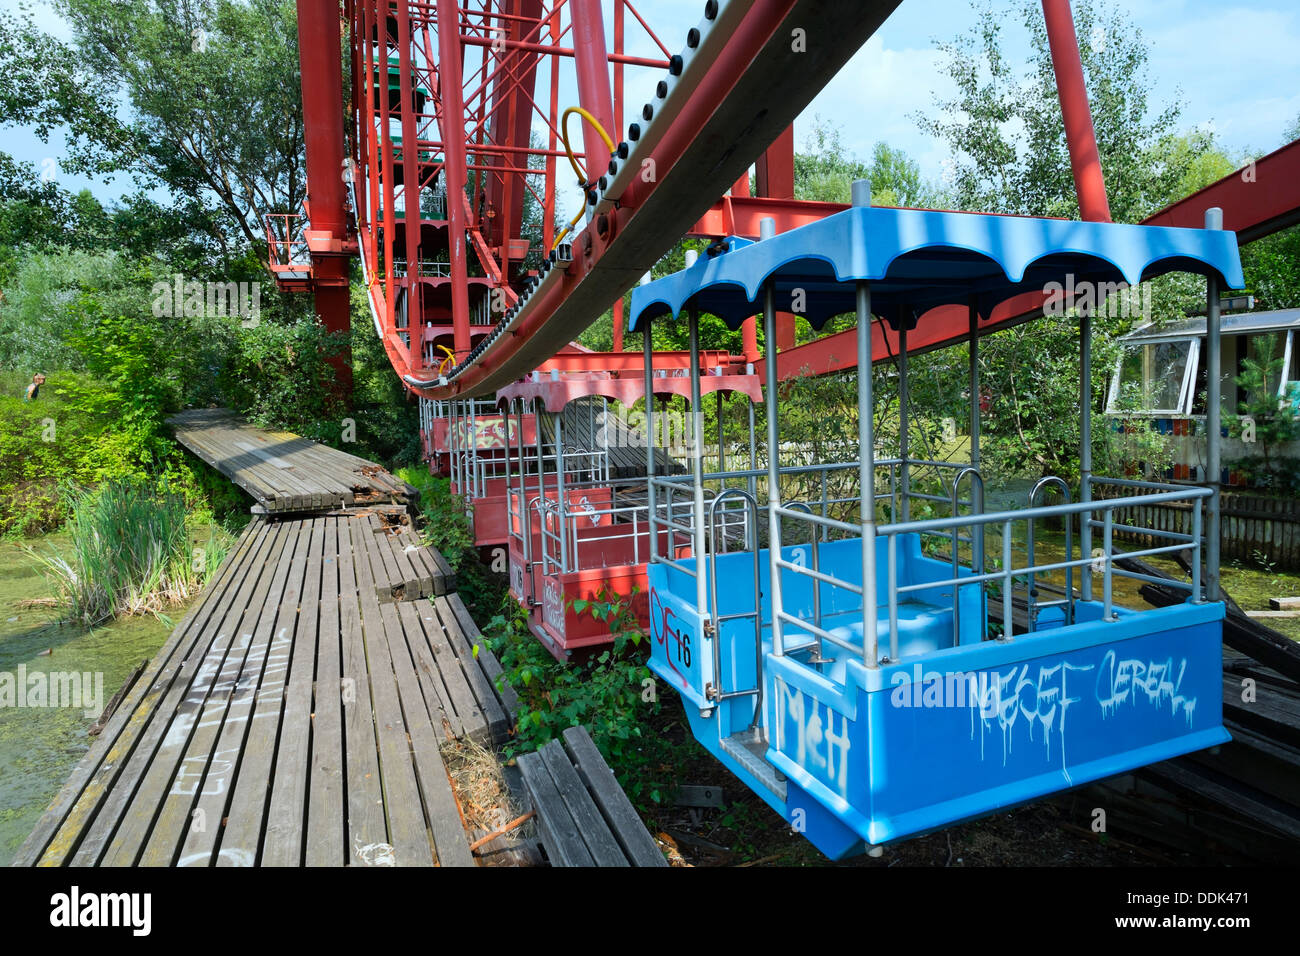 Abandoned former amusement park at Spreepark in Berlin Germany - Stock Image